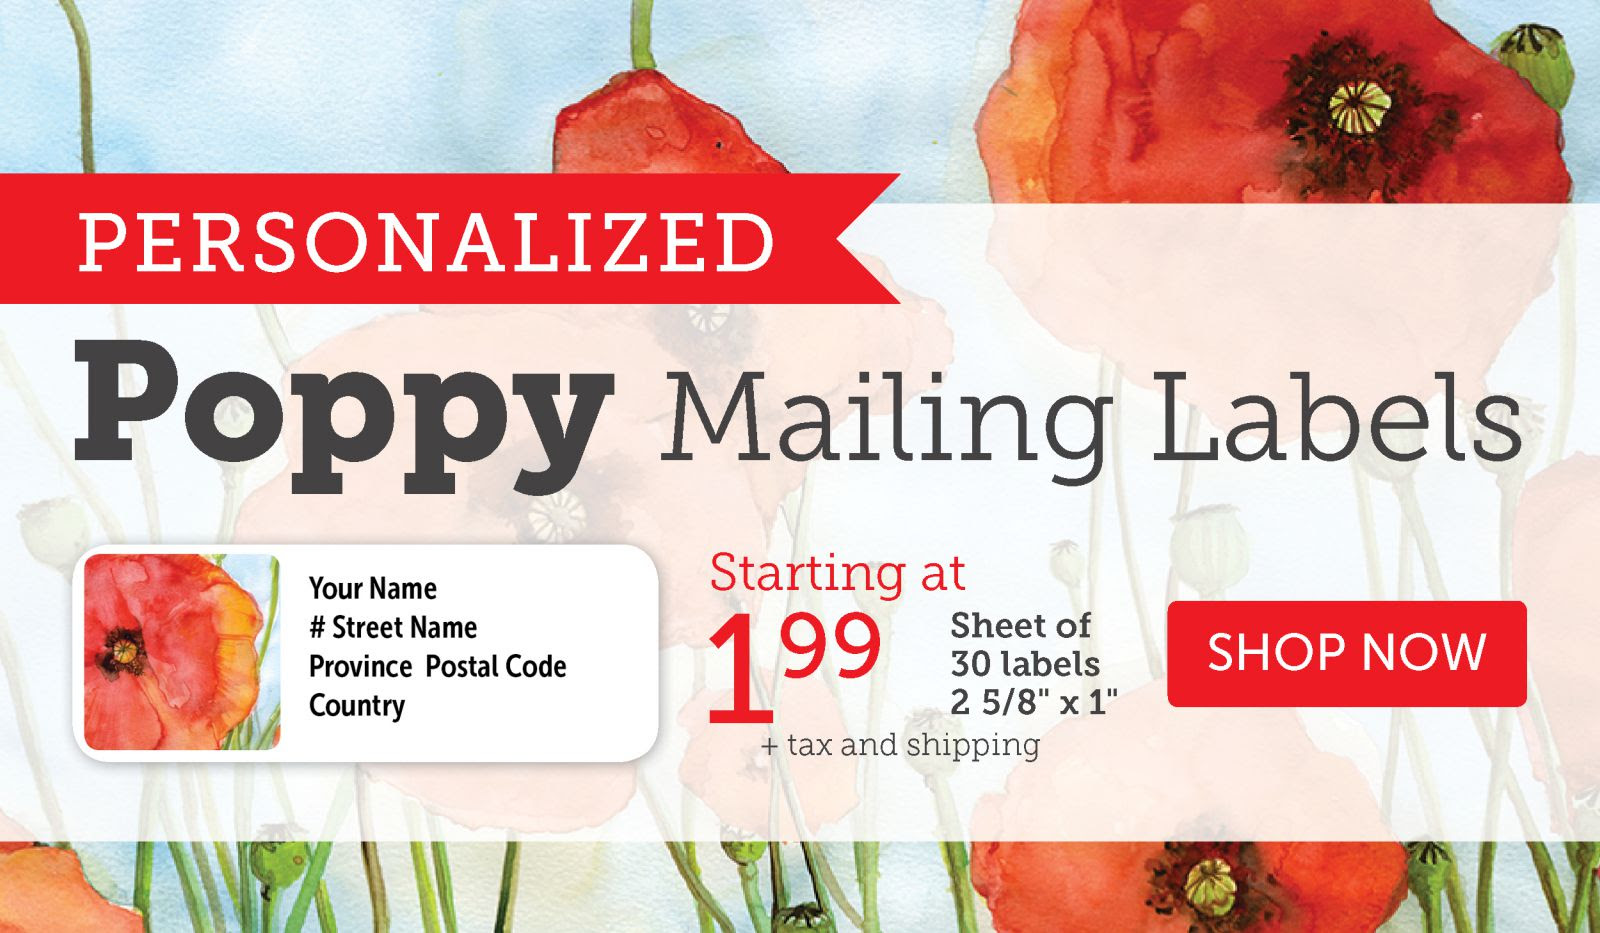 Personalized Poppy Mailing Labels